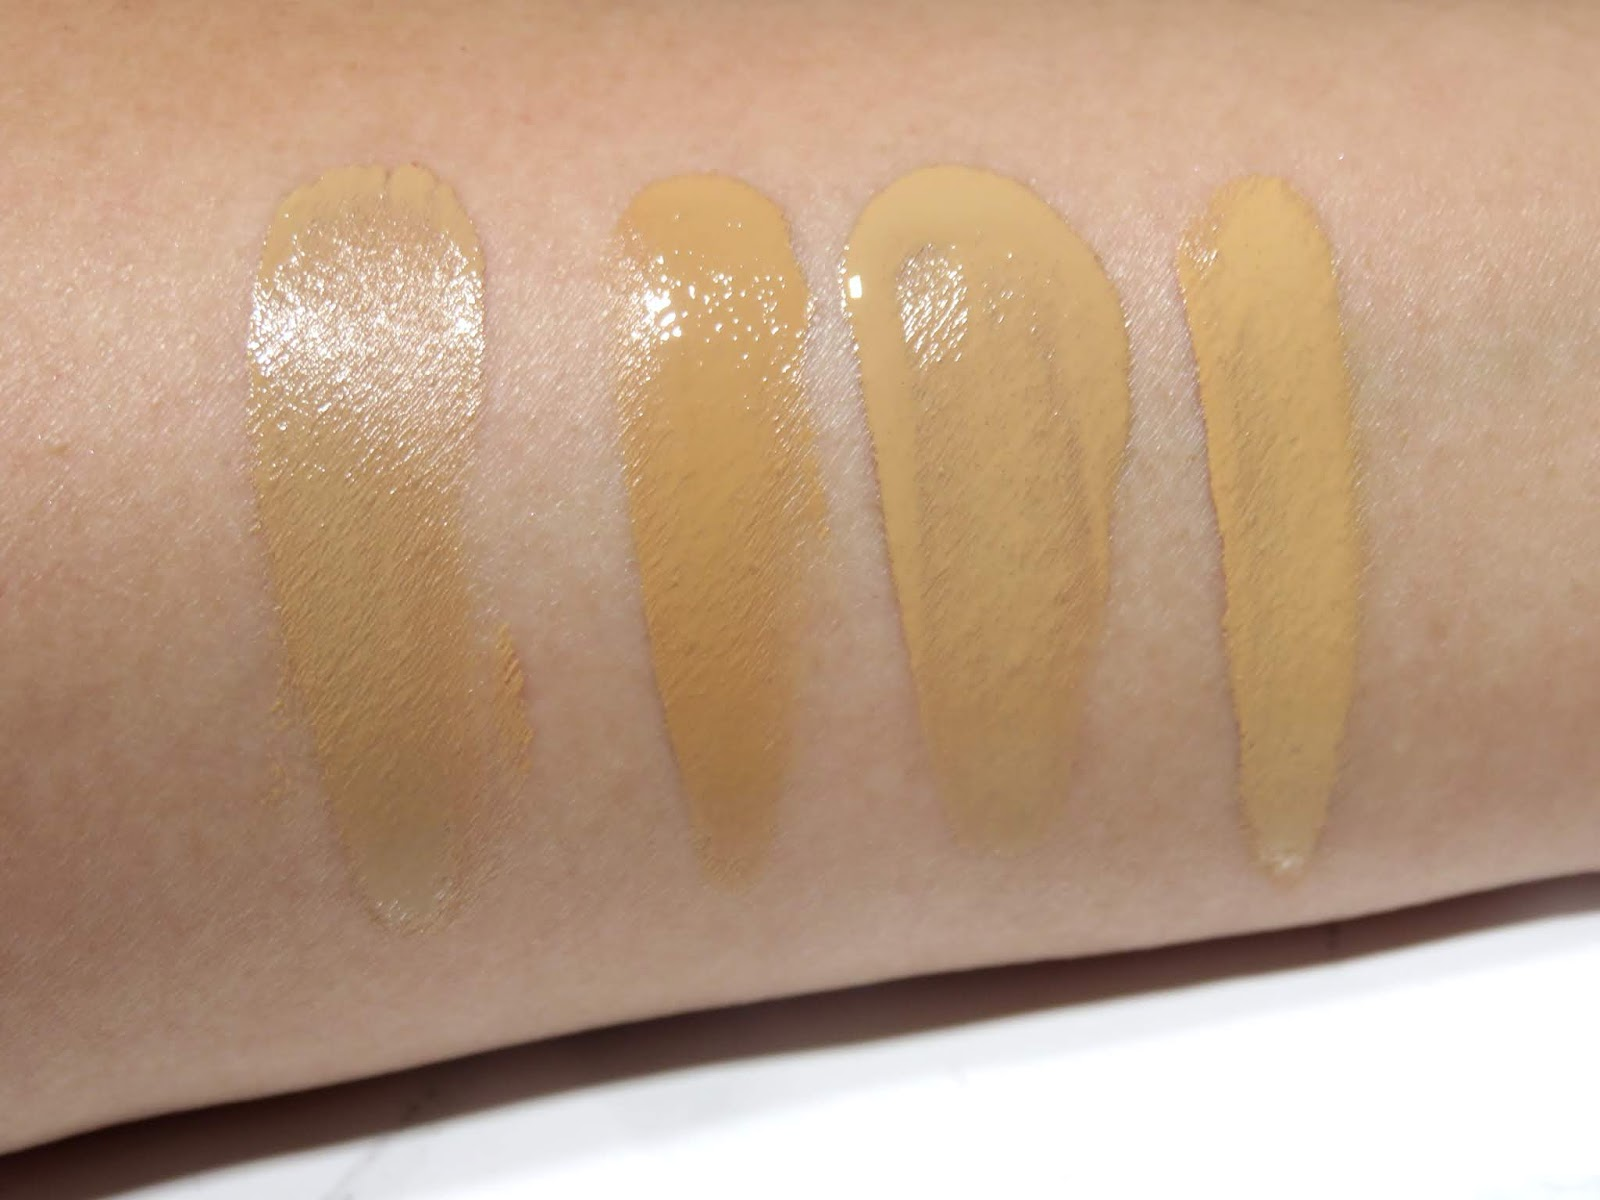 Tom Ford Shade and Illuminate Soft Radiance Cushion Compact Foundation Comparison Swatches